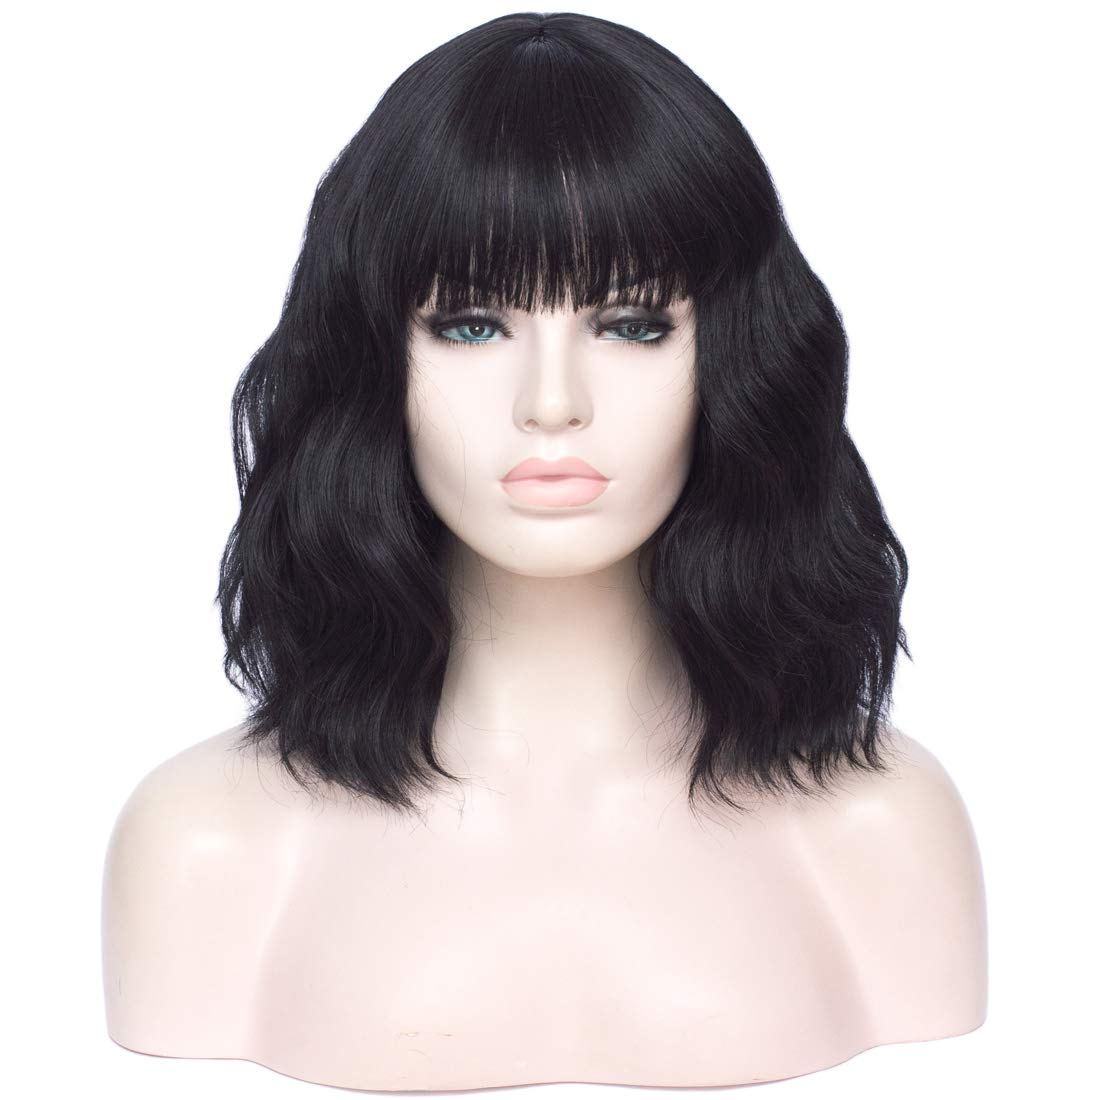 Short Bob Wigs with Bangs Curly Natural Wavy Short Wig Synthetic Cosplay Wig Heat Resistant Bob Party Wig Colorful Costume Wigs (14inch Black)